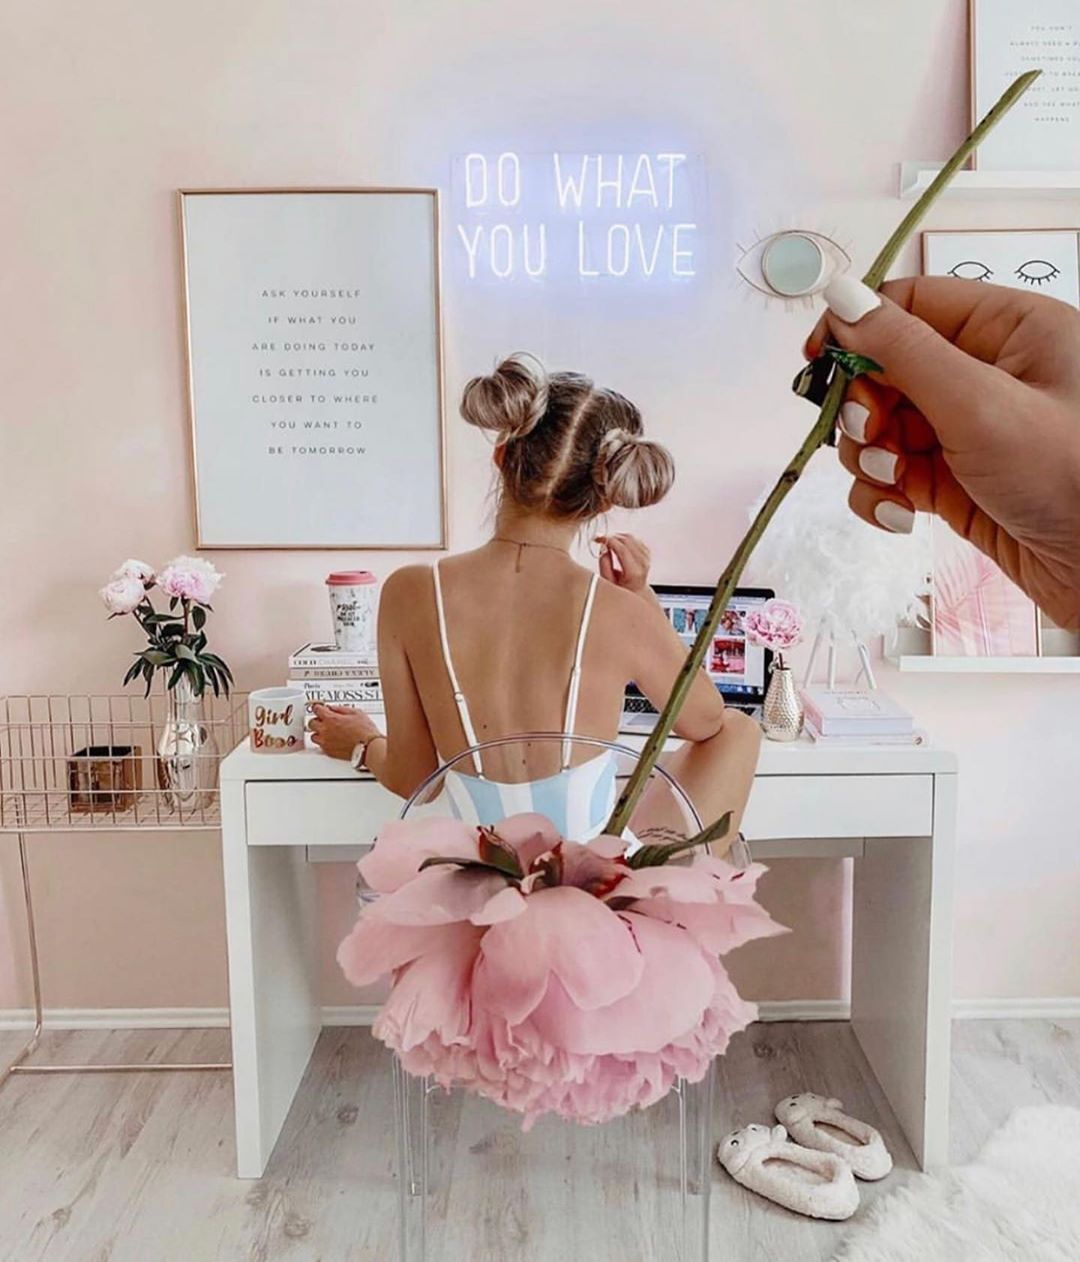 Best Homeoffice Desk: Do What You Love. Girly Workspace